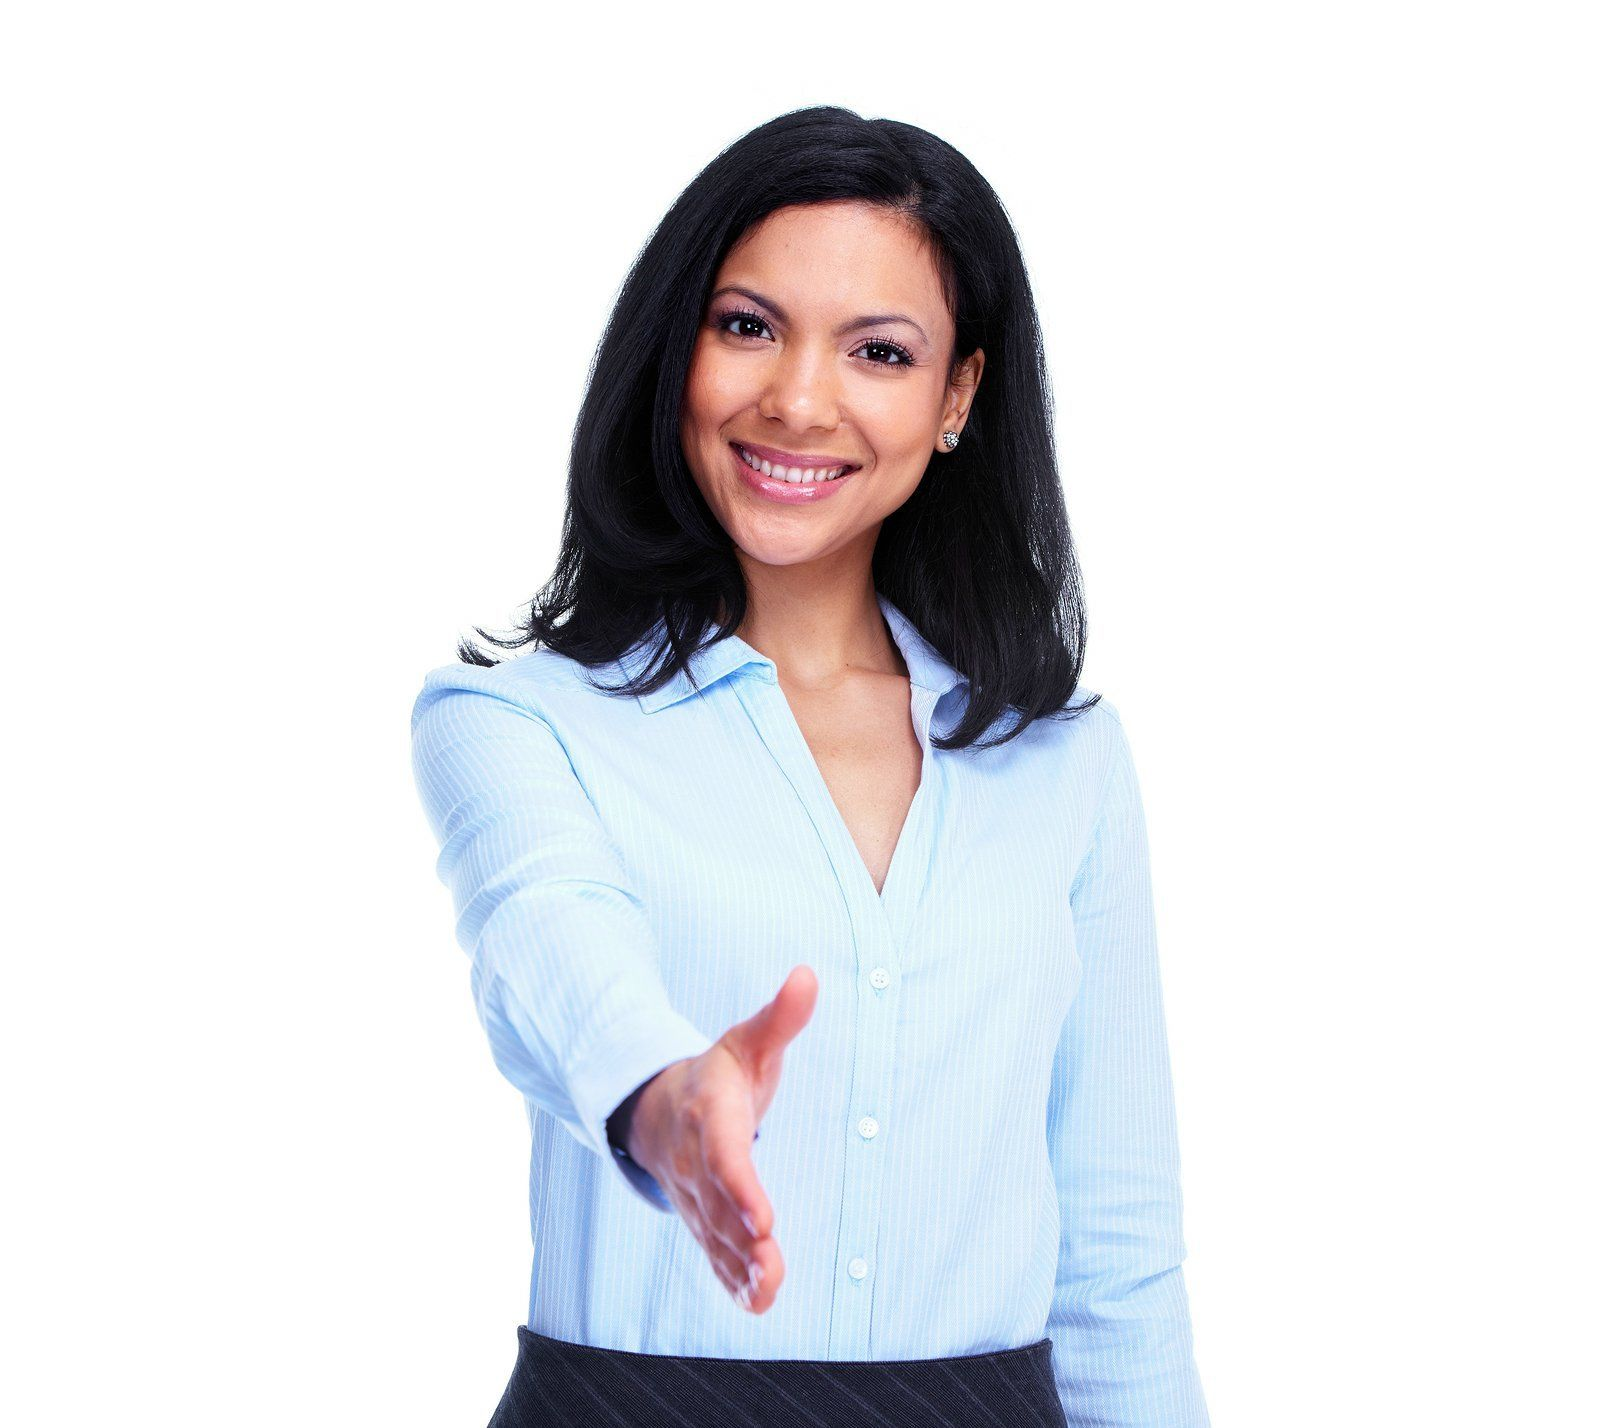 Interview Preparation Tips That Will Help You Get The Interview